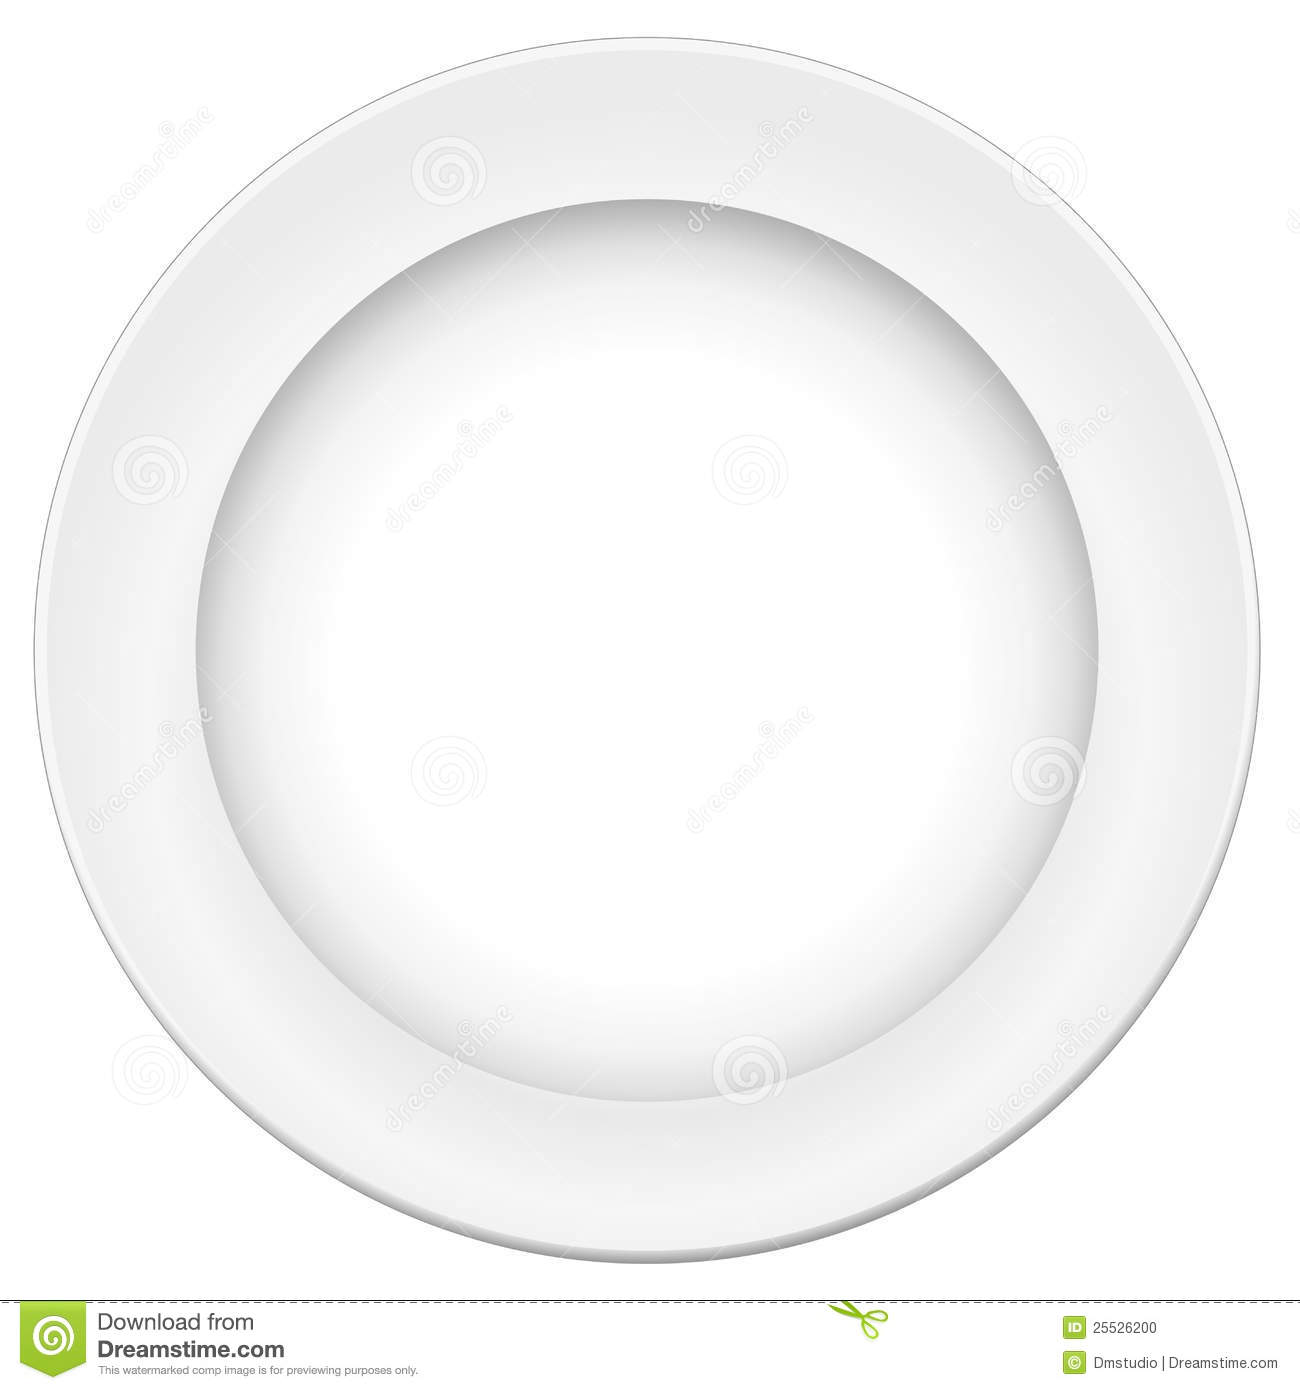 Vector Plate Stock Photo - Image: 25526200